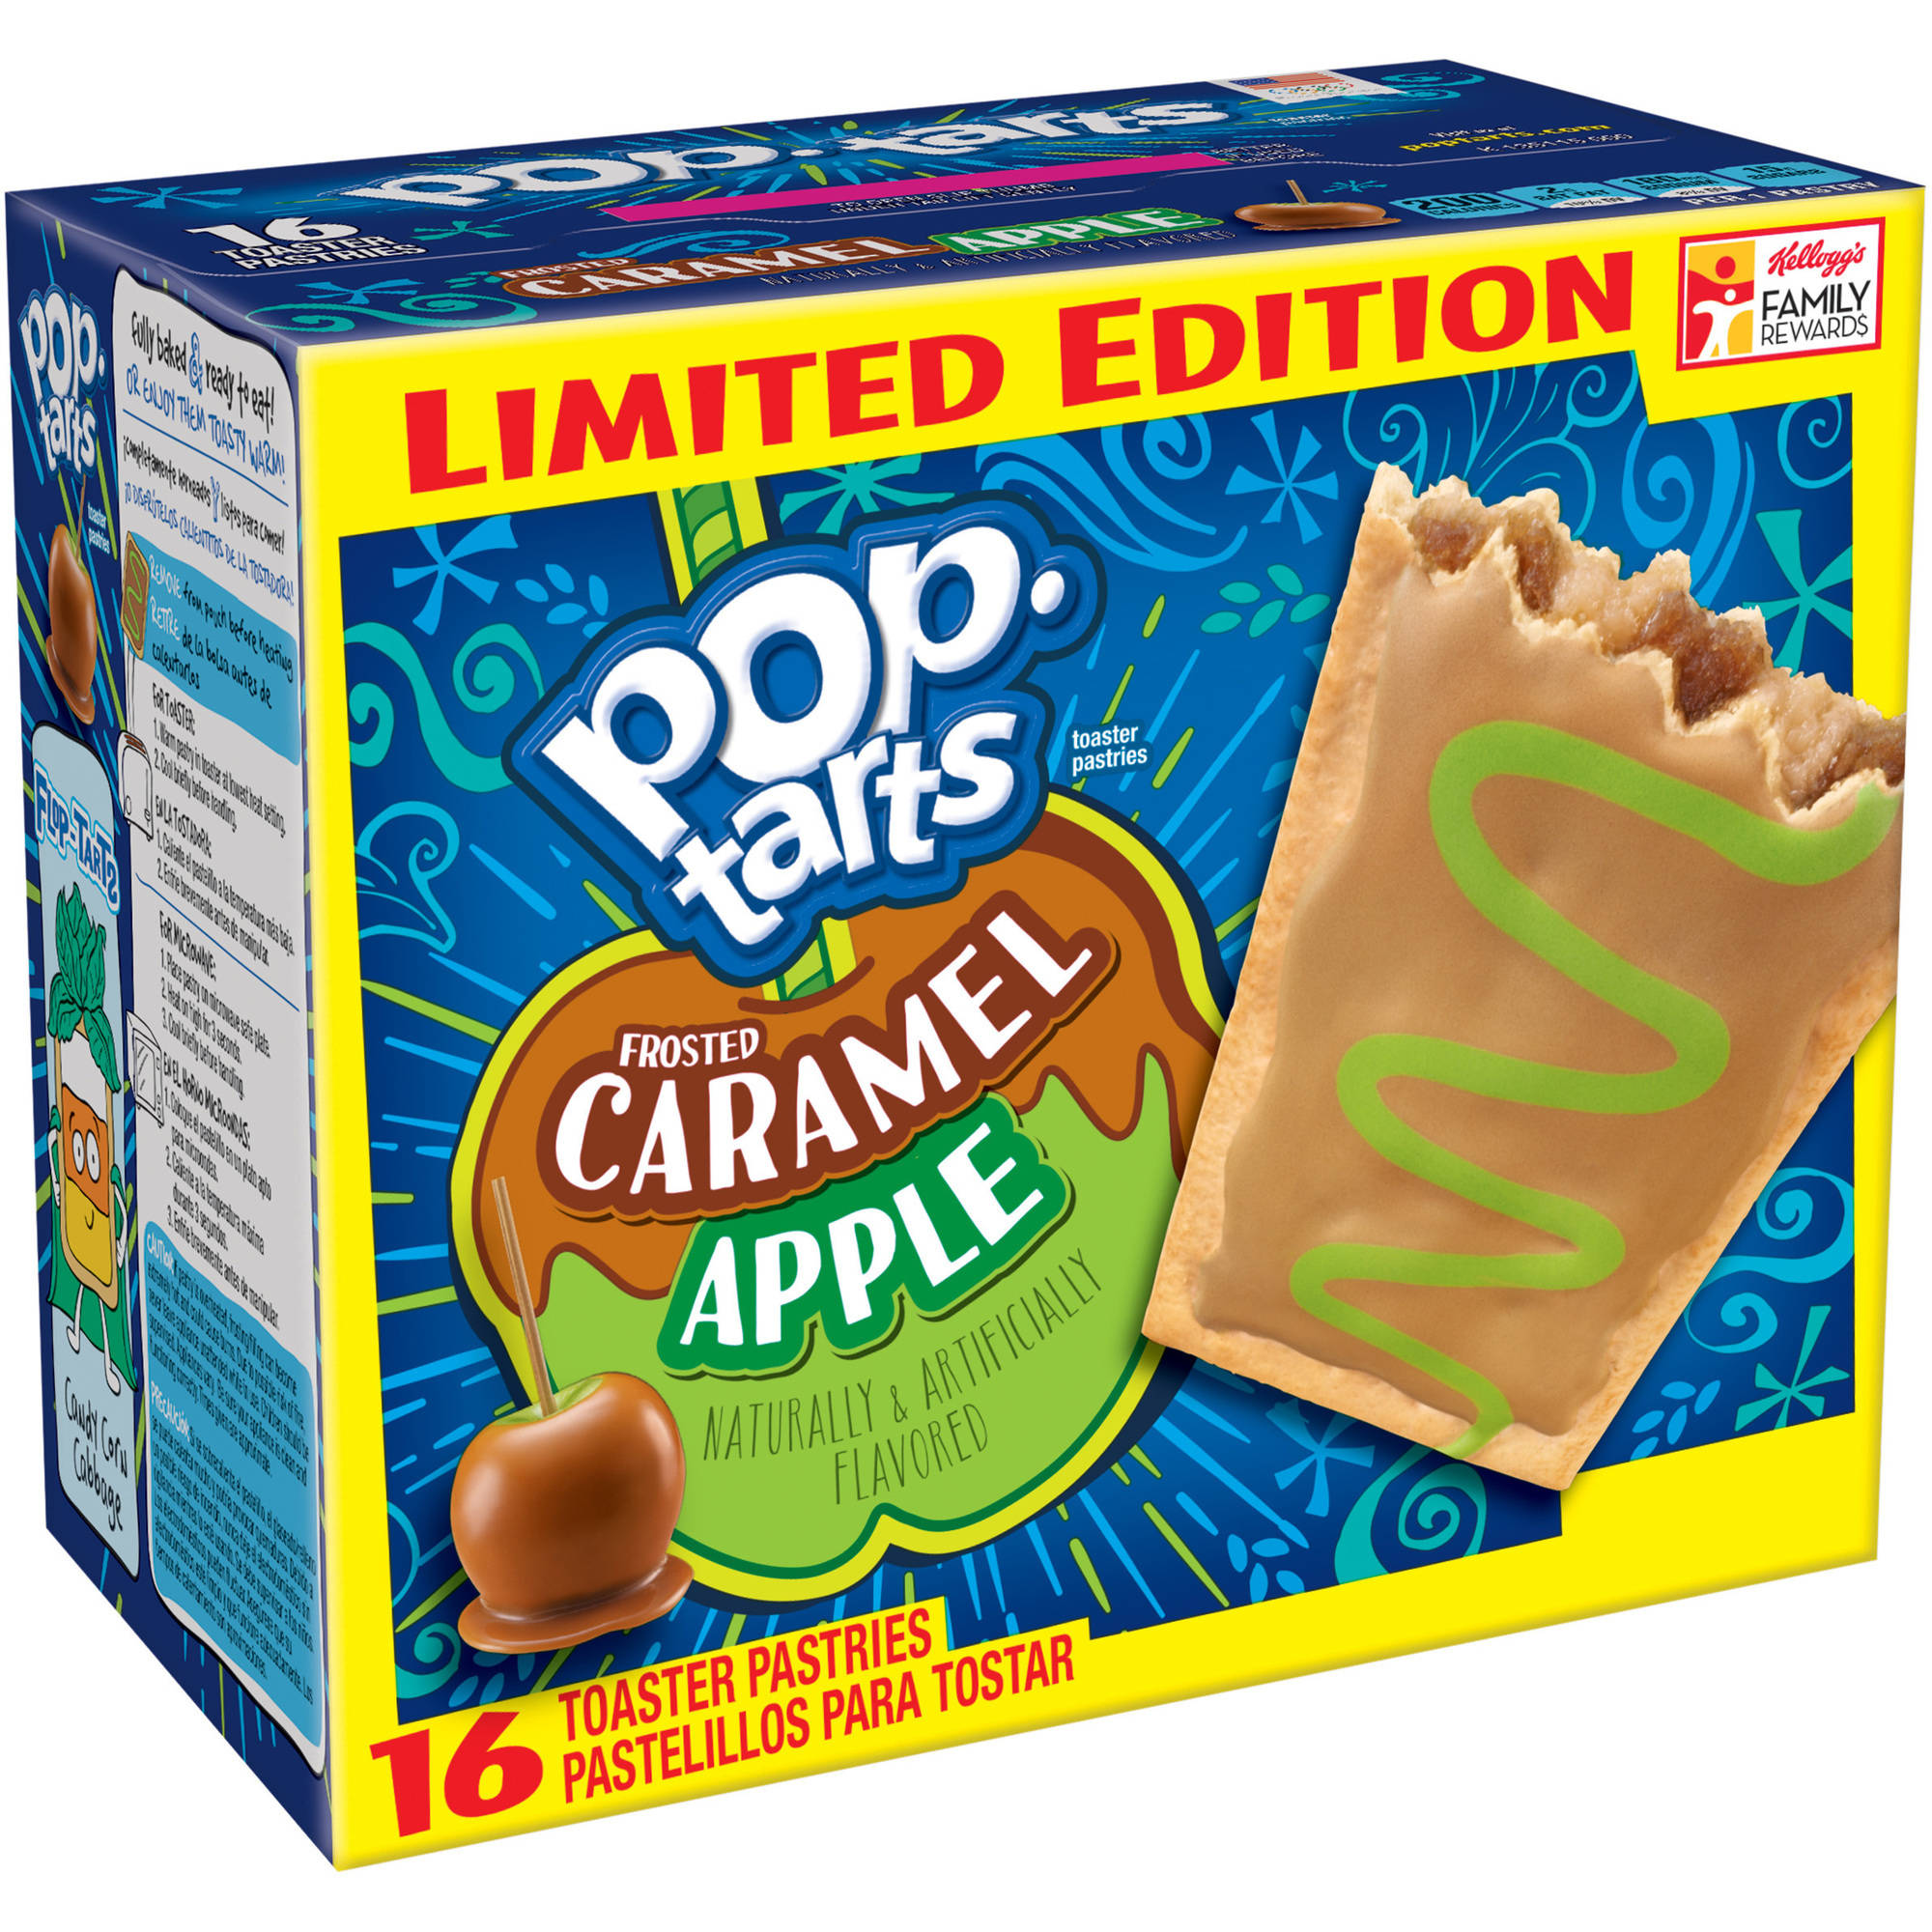 Kellogg's Pop-Tarts Frosted Caramel Apple Toaster Pastries 16ct 28.2oz